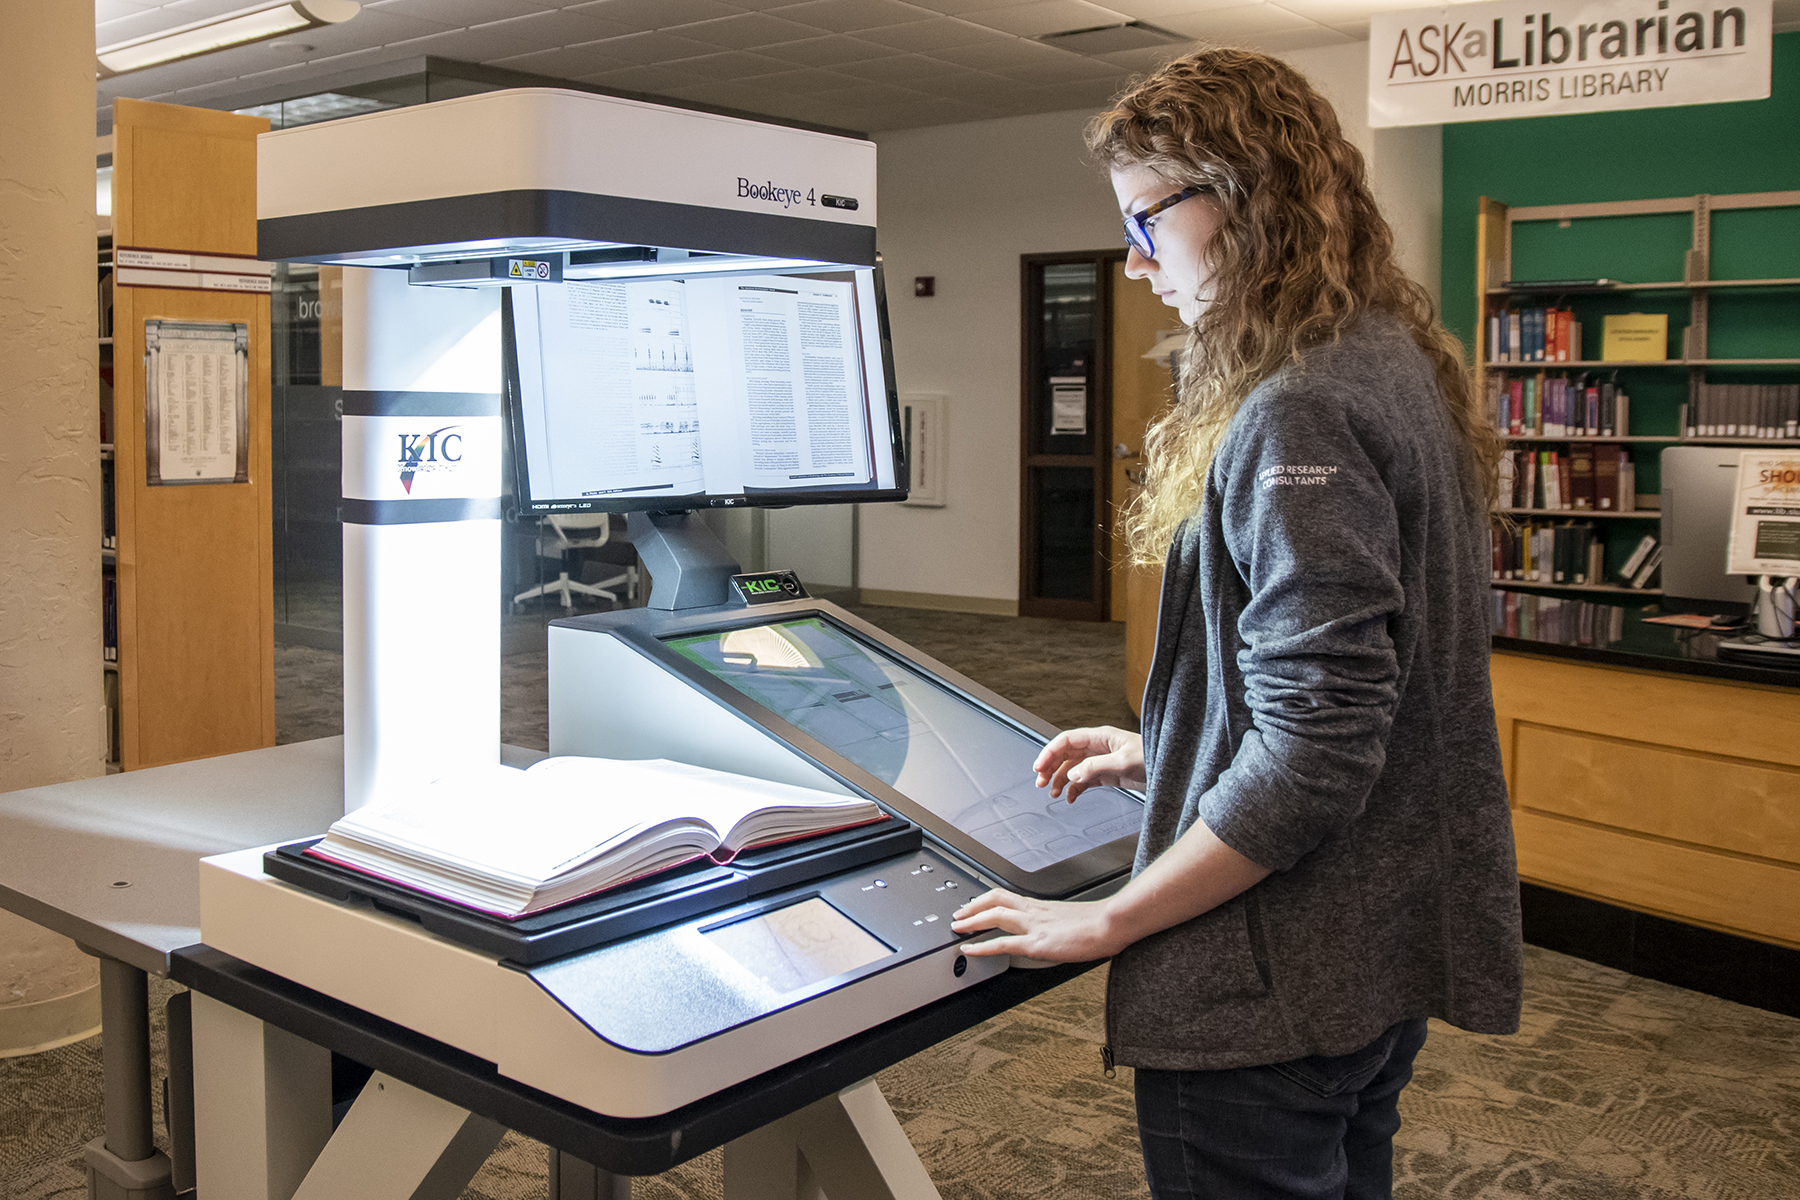 morris-library-digital-book-scanner.jpg